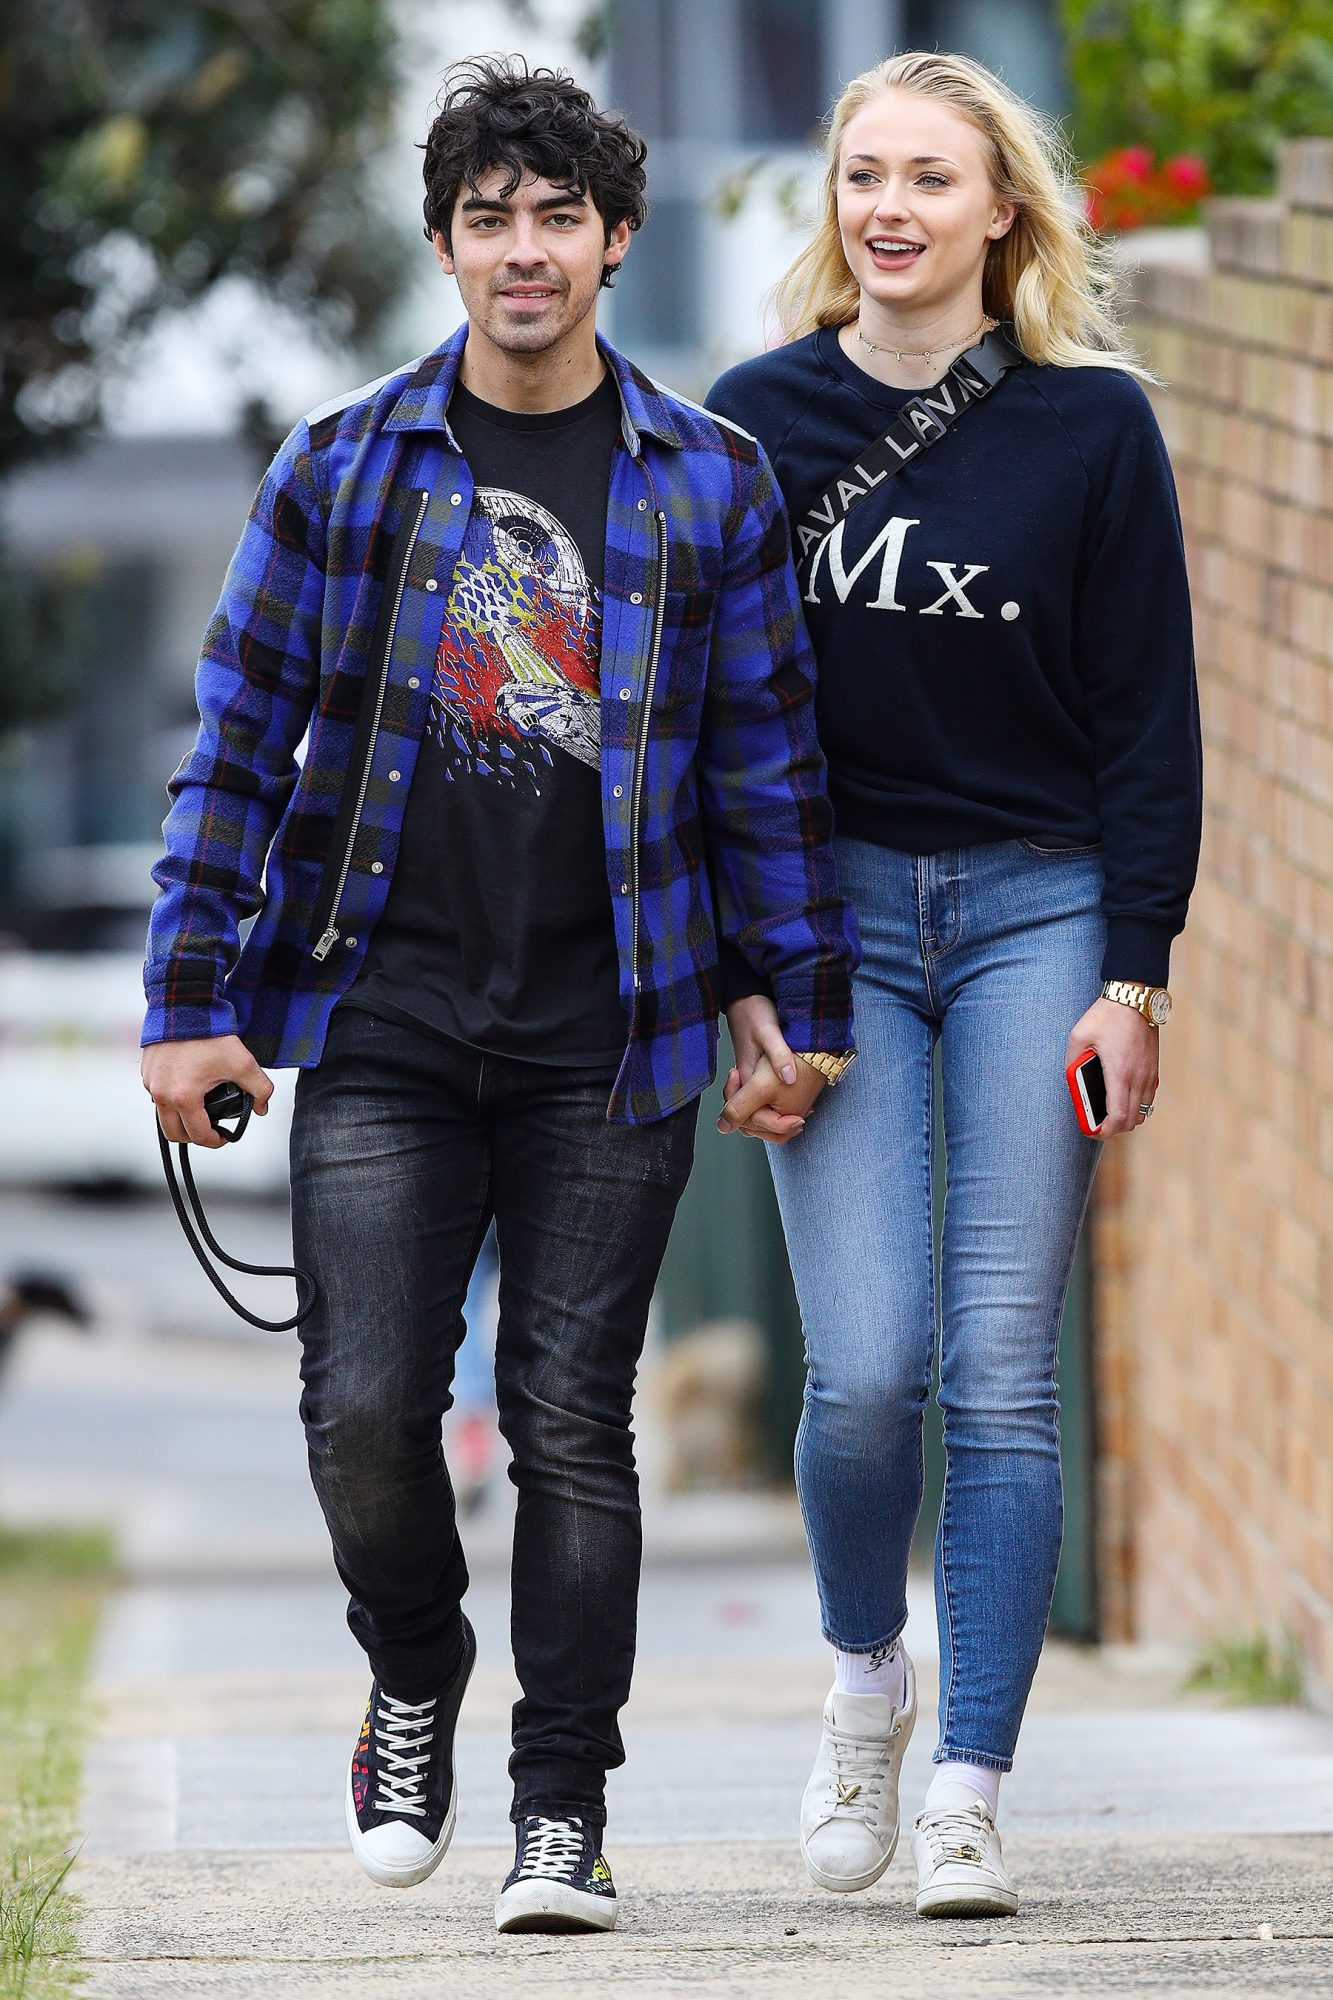 EXCLUSIVE: Loved up couple Joe Jonas and Sophie Turner pictured in Sydney walking hand in hand.